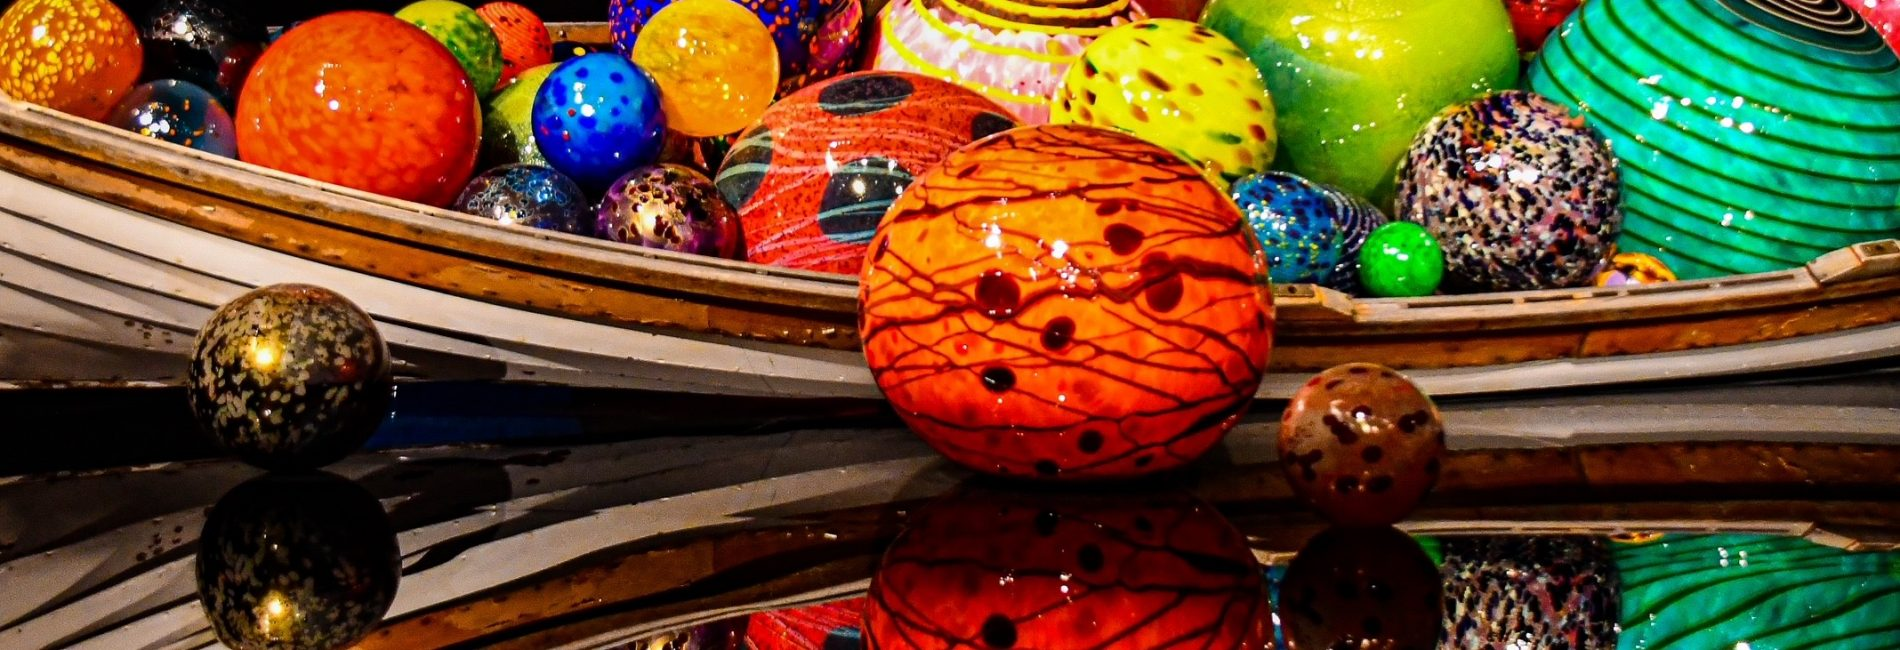 CHIHULY GLASS AND GARDEN: 7 REASONS TO VISIT IN PICTURES